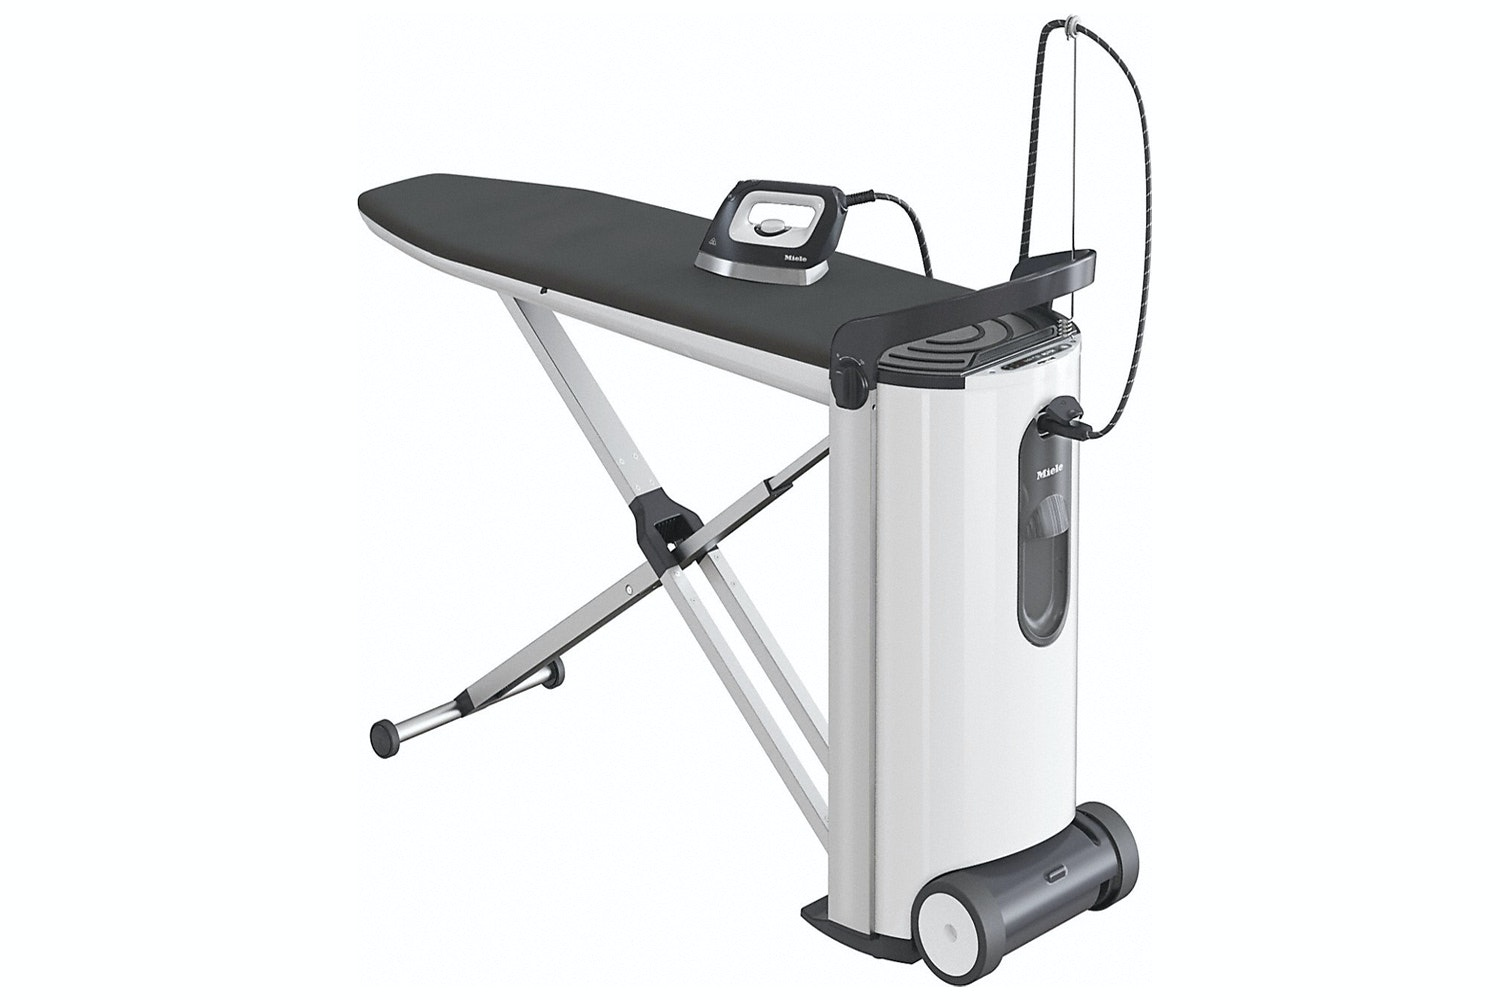 Miele FashionMaster Steam Ironing System | B3826